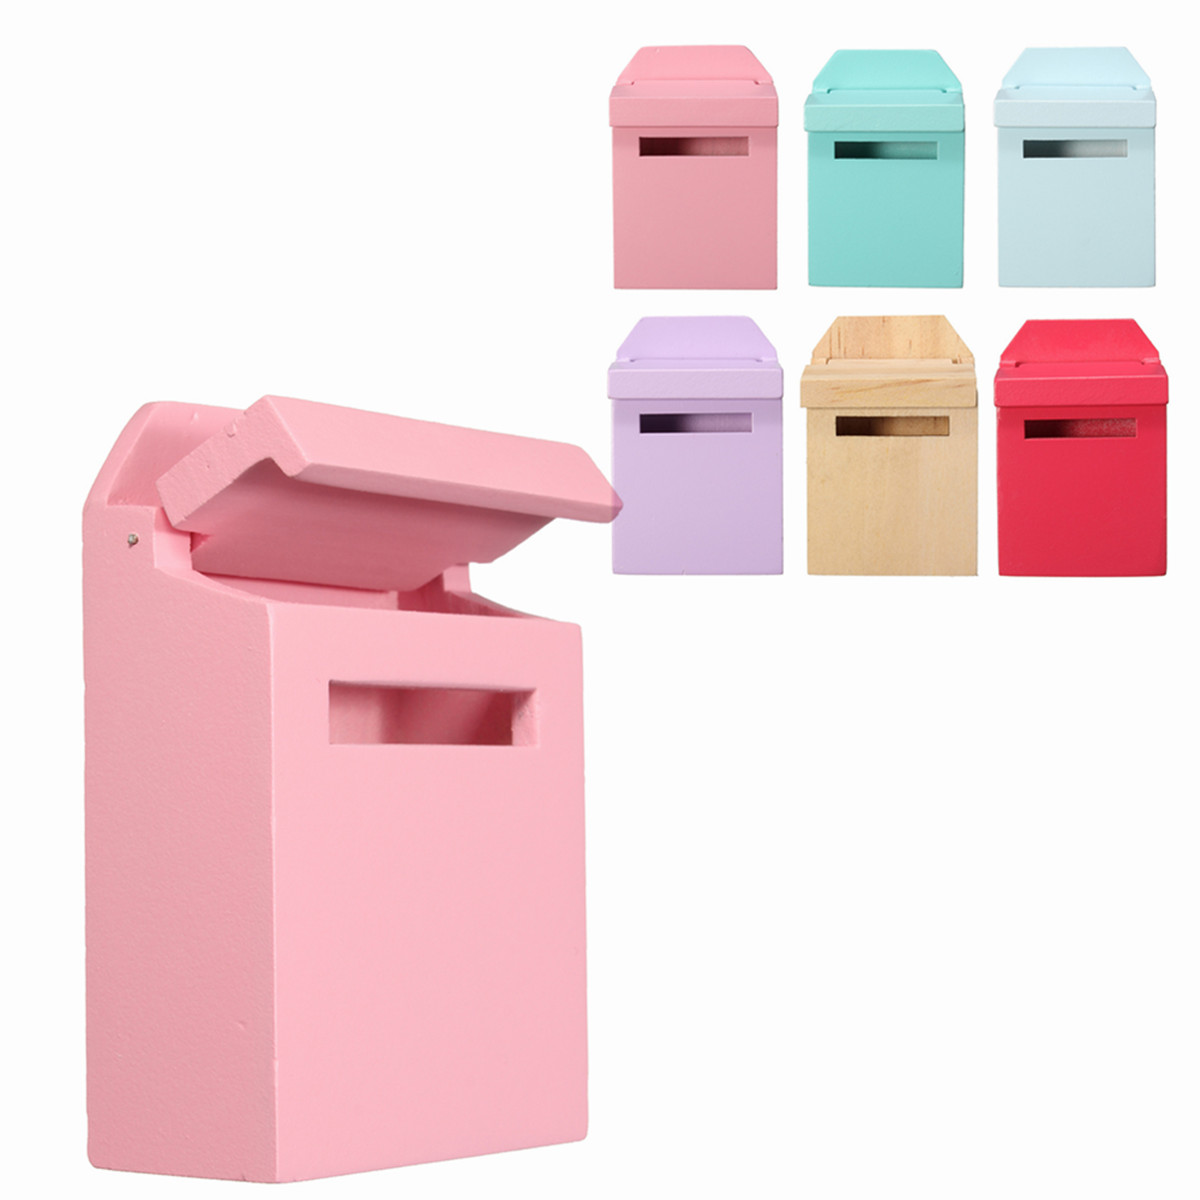 1/12 Scale Colorful Mail Box DIY Dollhouse Miniature Furniture Accessories For Dollhouse